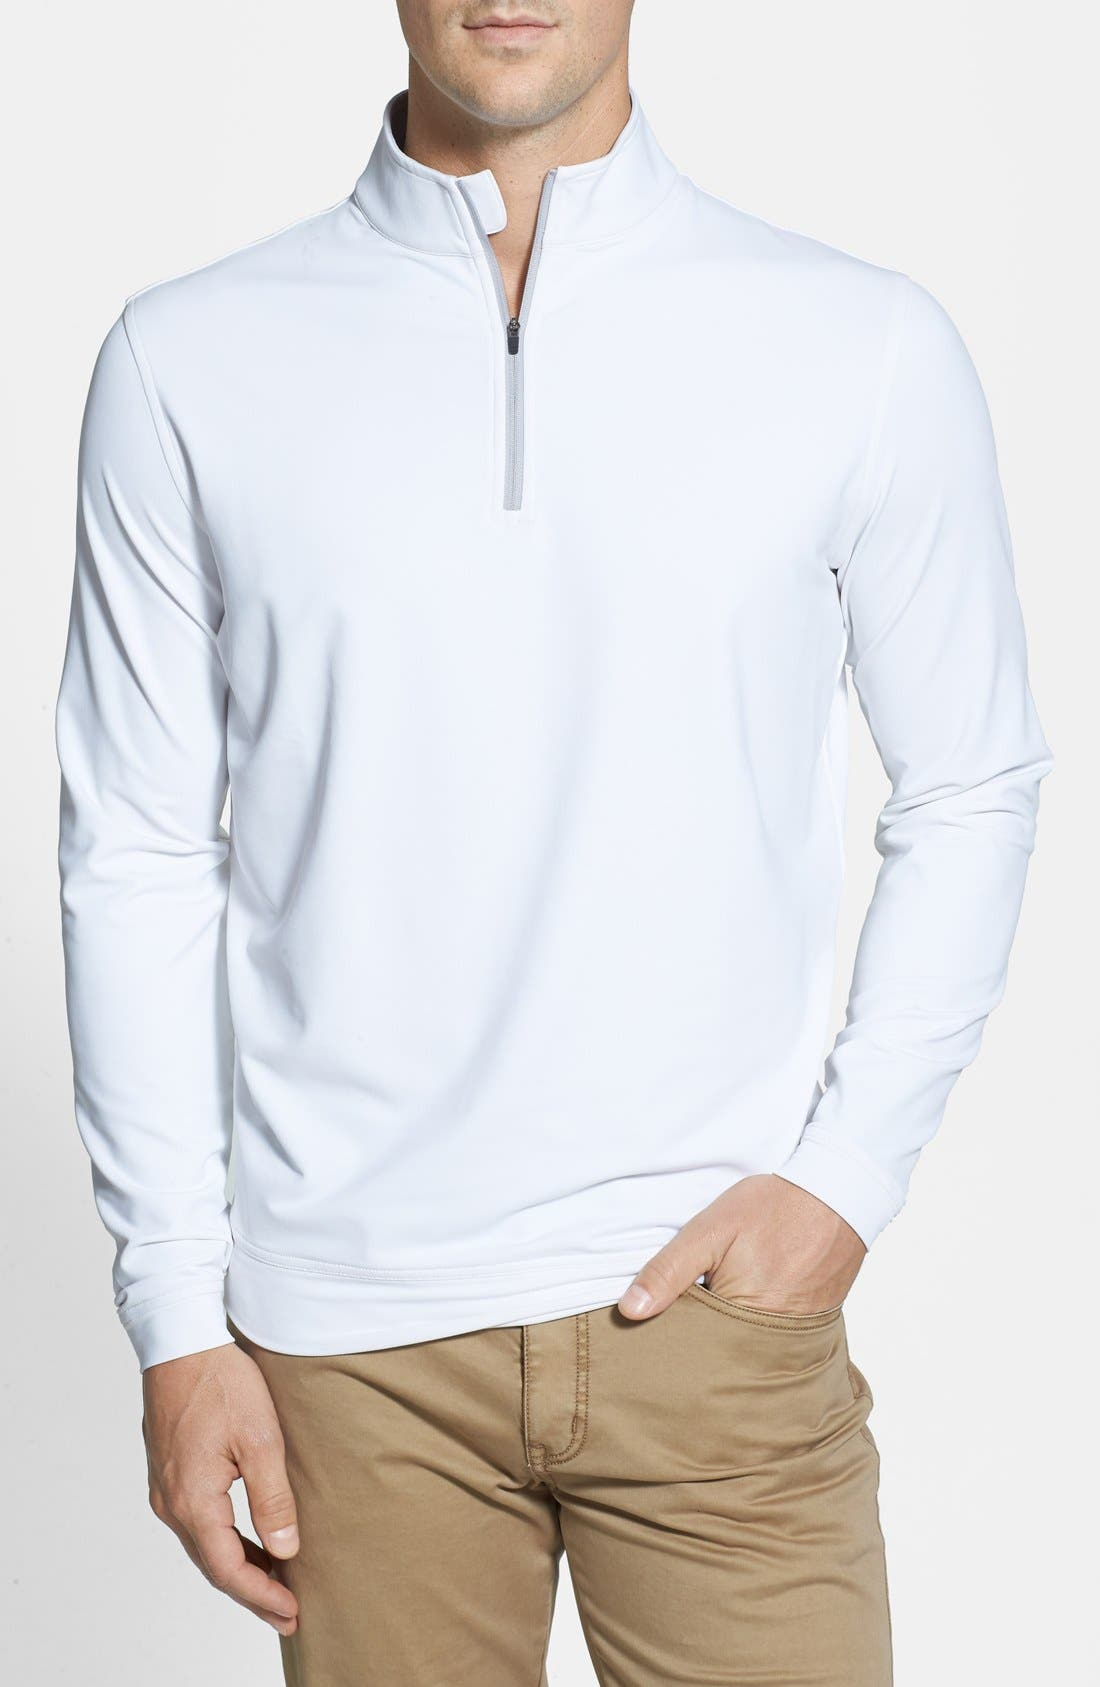 Alternate Image 1 Selected - Peter Millar Moisture Wicking Stretch Quarter Zip Jacket